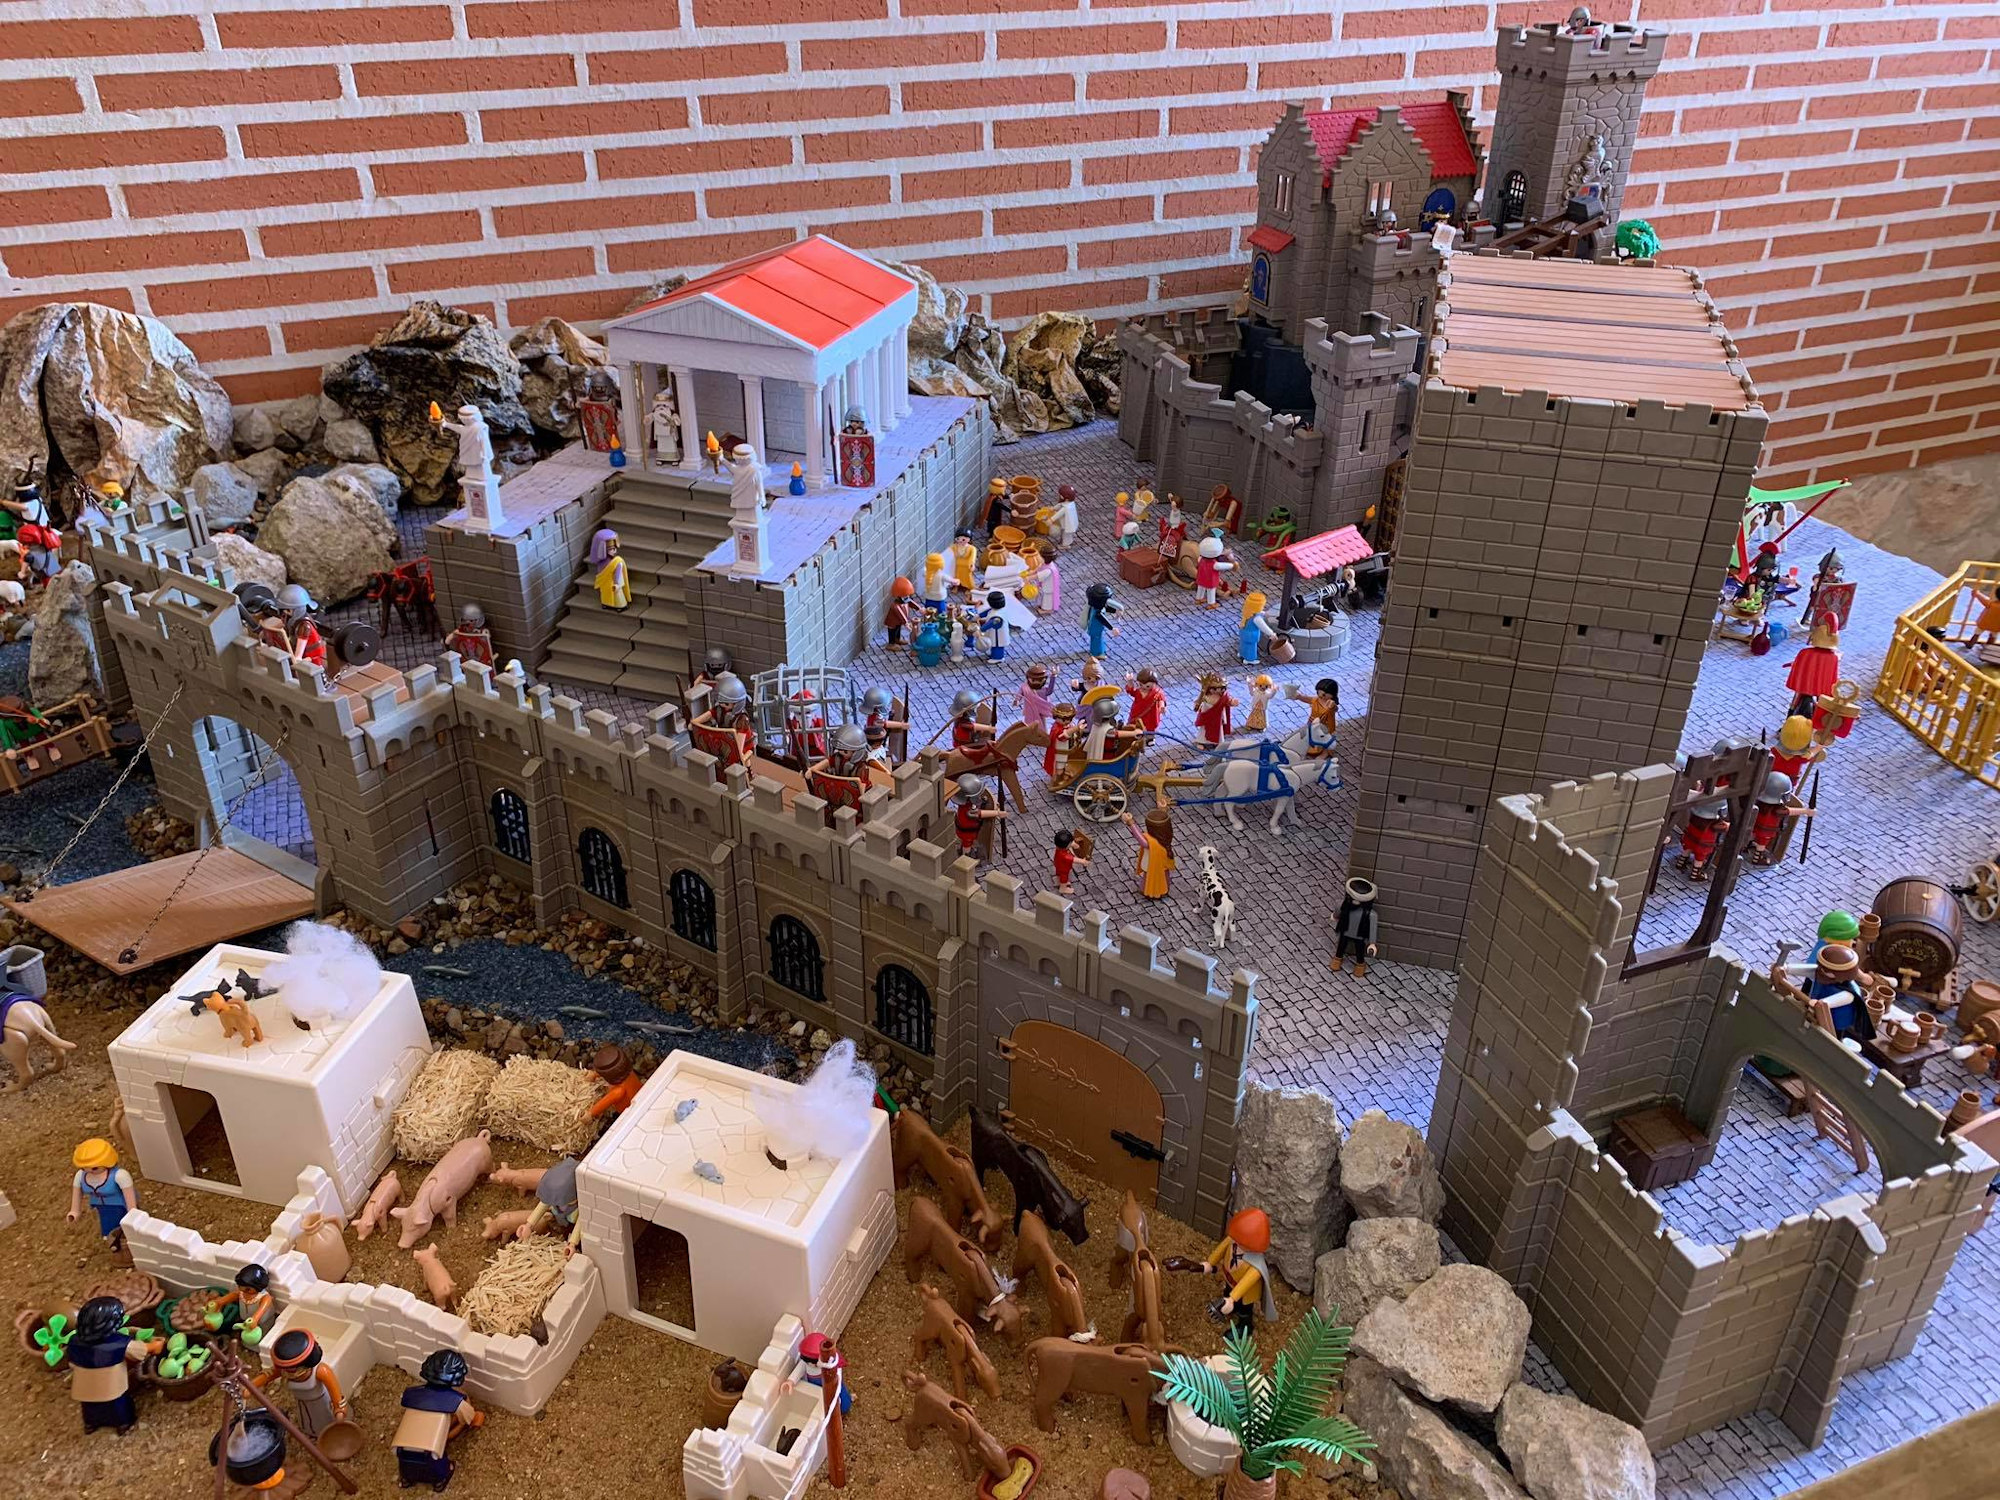 Spanish architect recreates the 'Running of the Bulls' with Playmobil